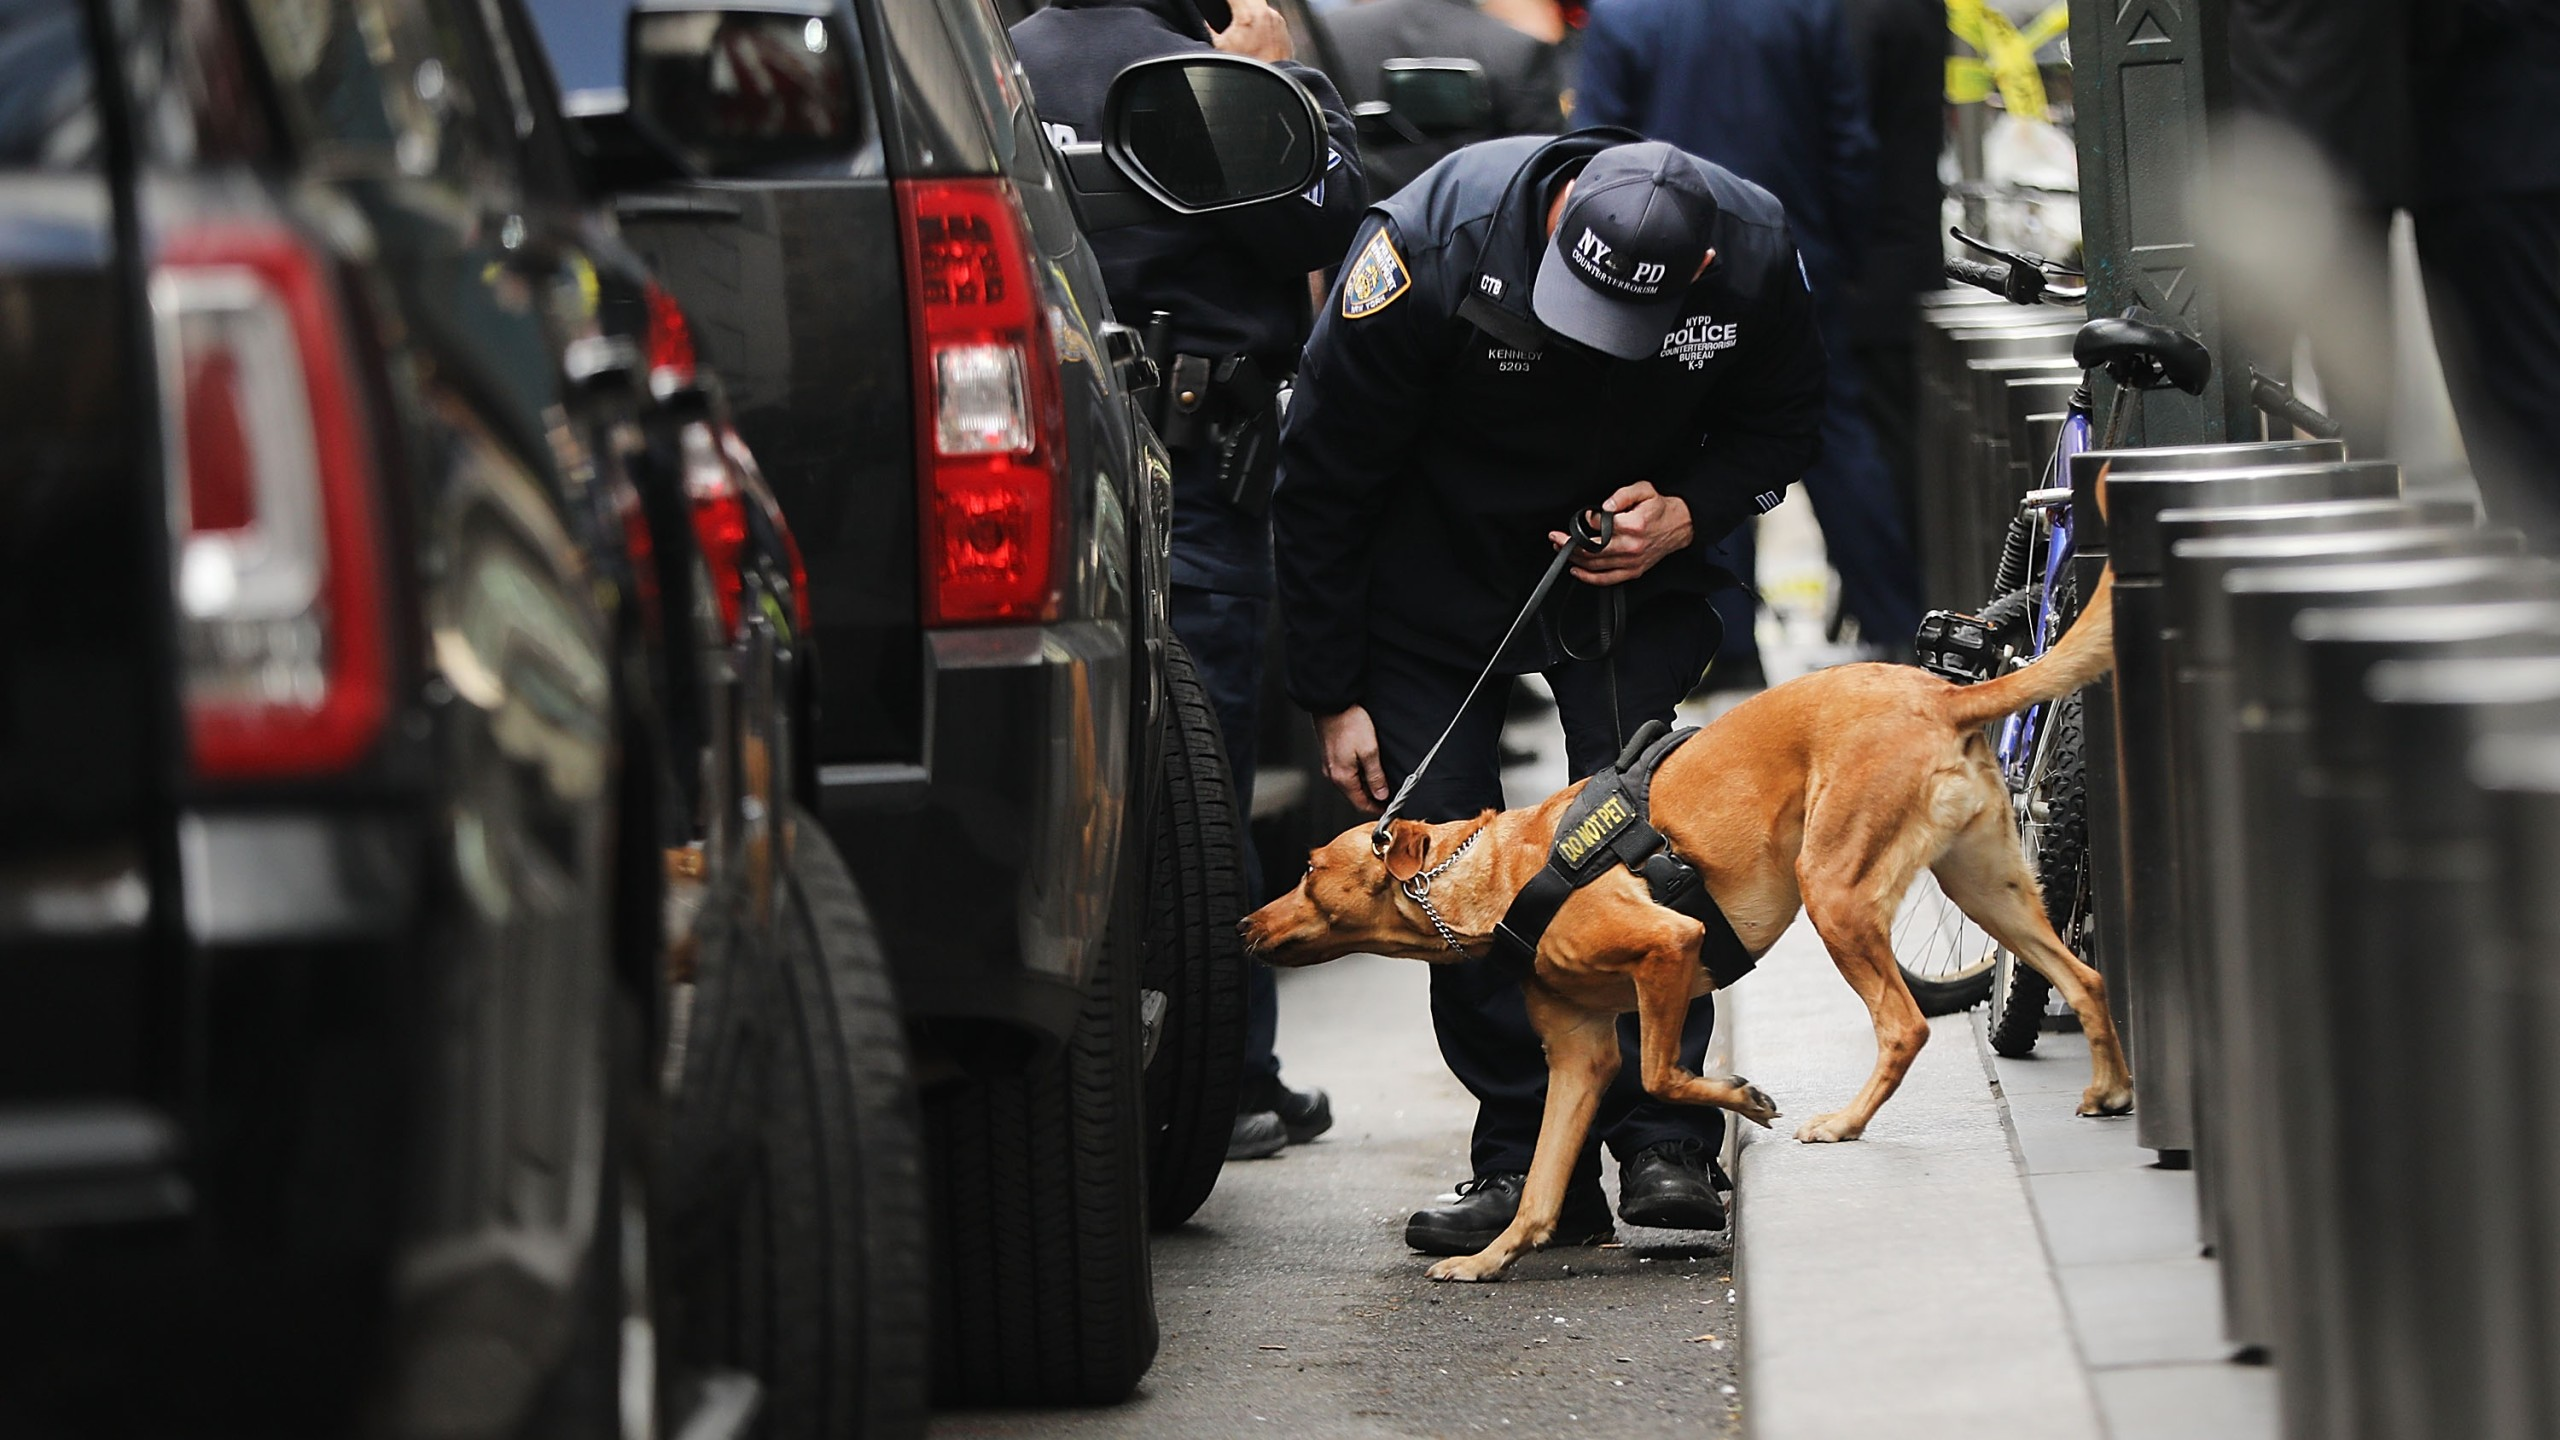 A police bomb-sniffing dog is deployed outside of the Time Warner Center after an explosive device was found Oct. 24, 2018, in New York City. CNN's office at the center was evacuated. (Credit: Spencer Platt/Getty Images)